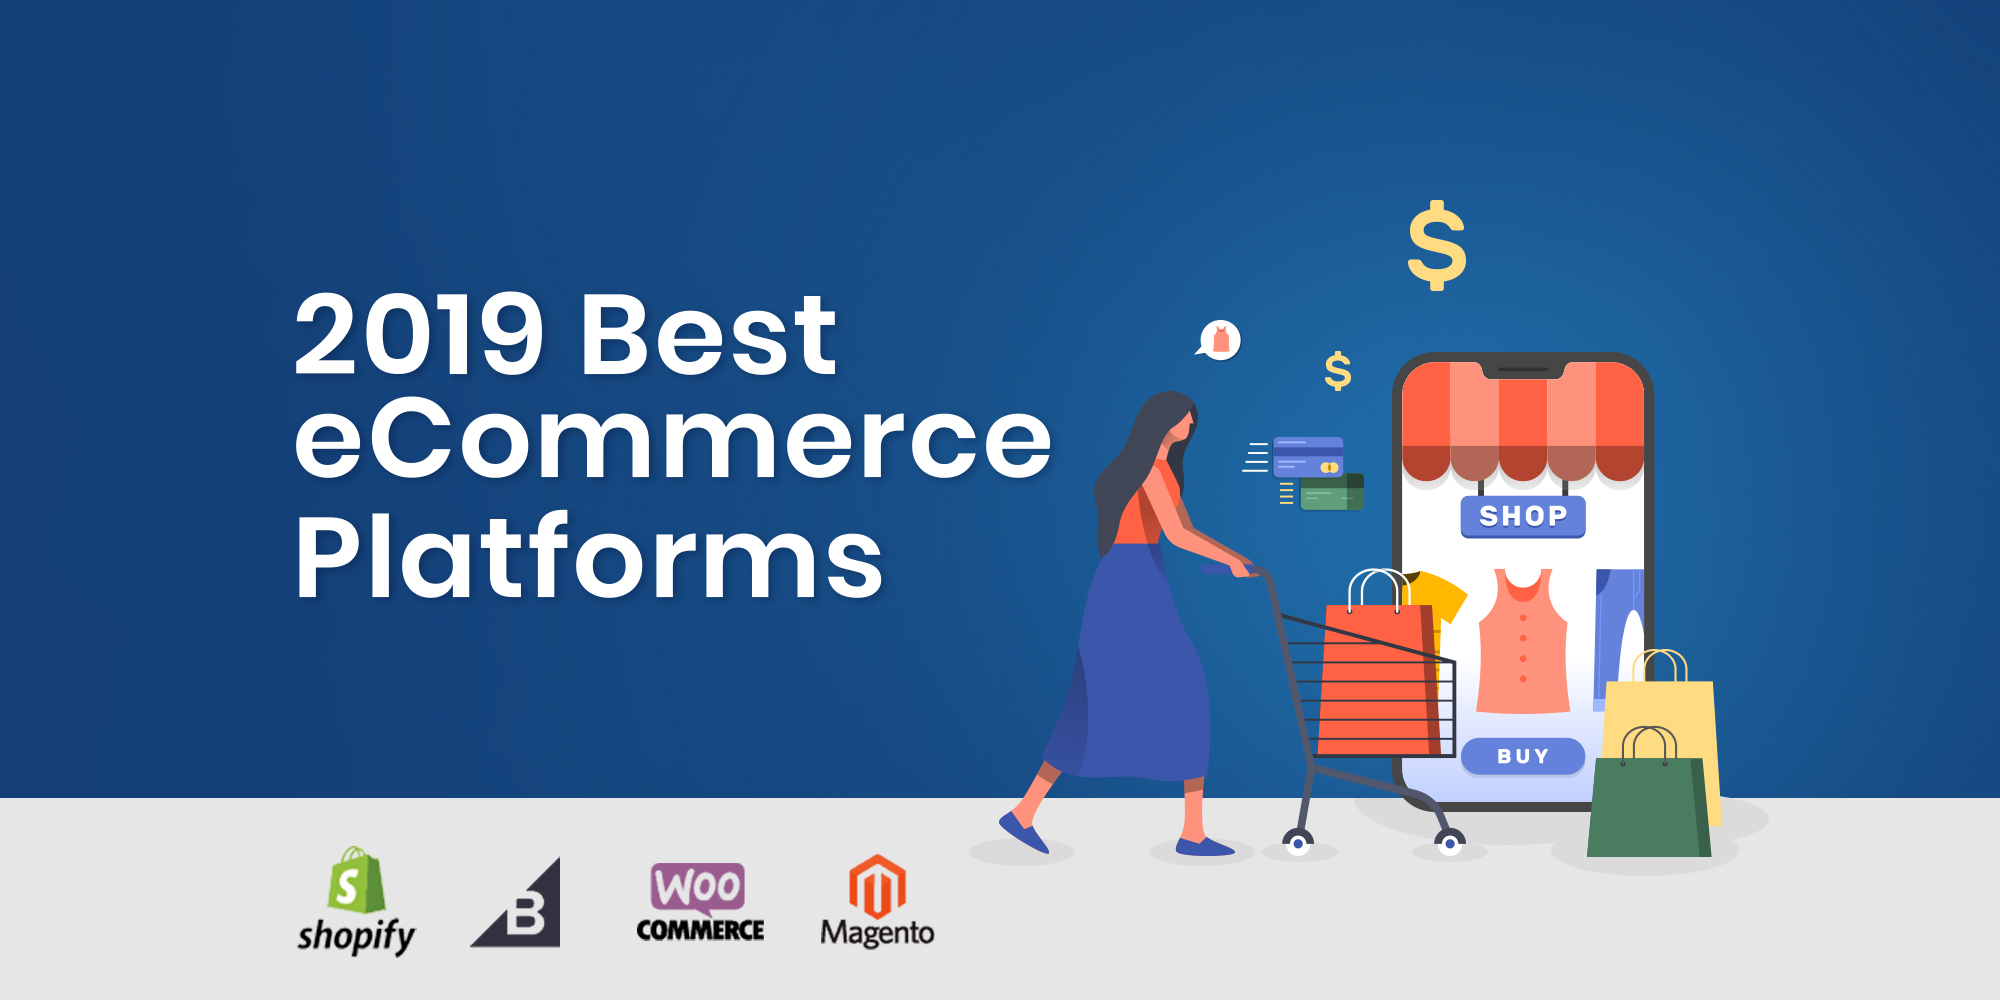 2019 Best eCommerce Platforms